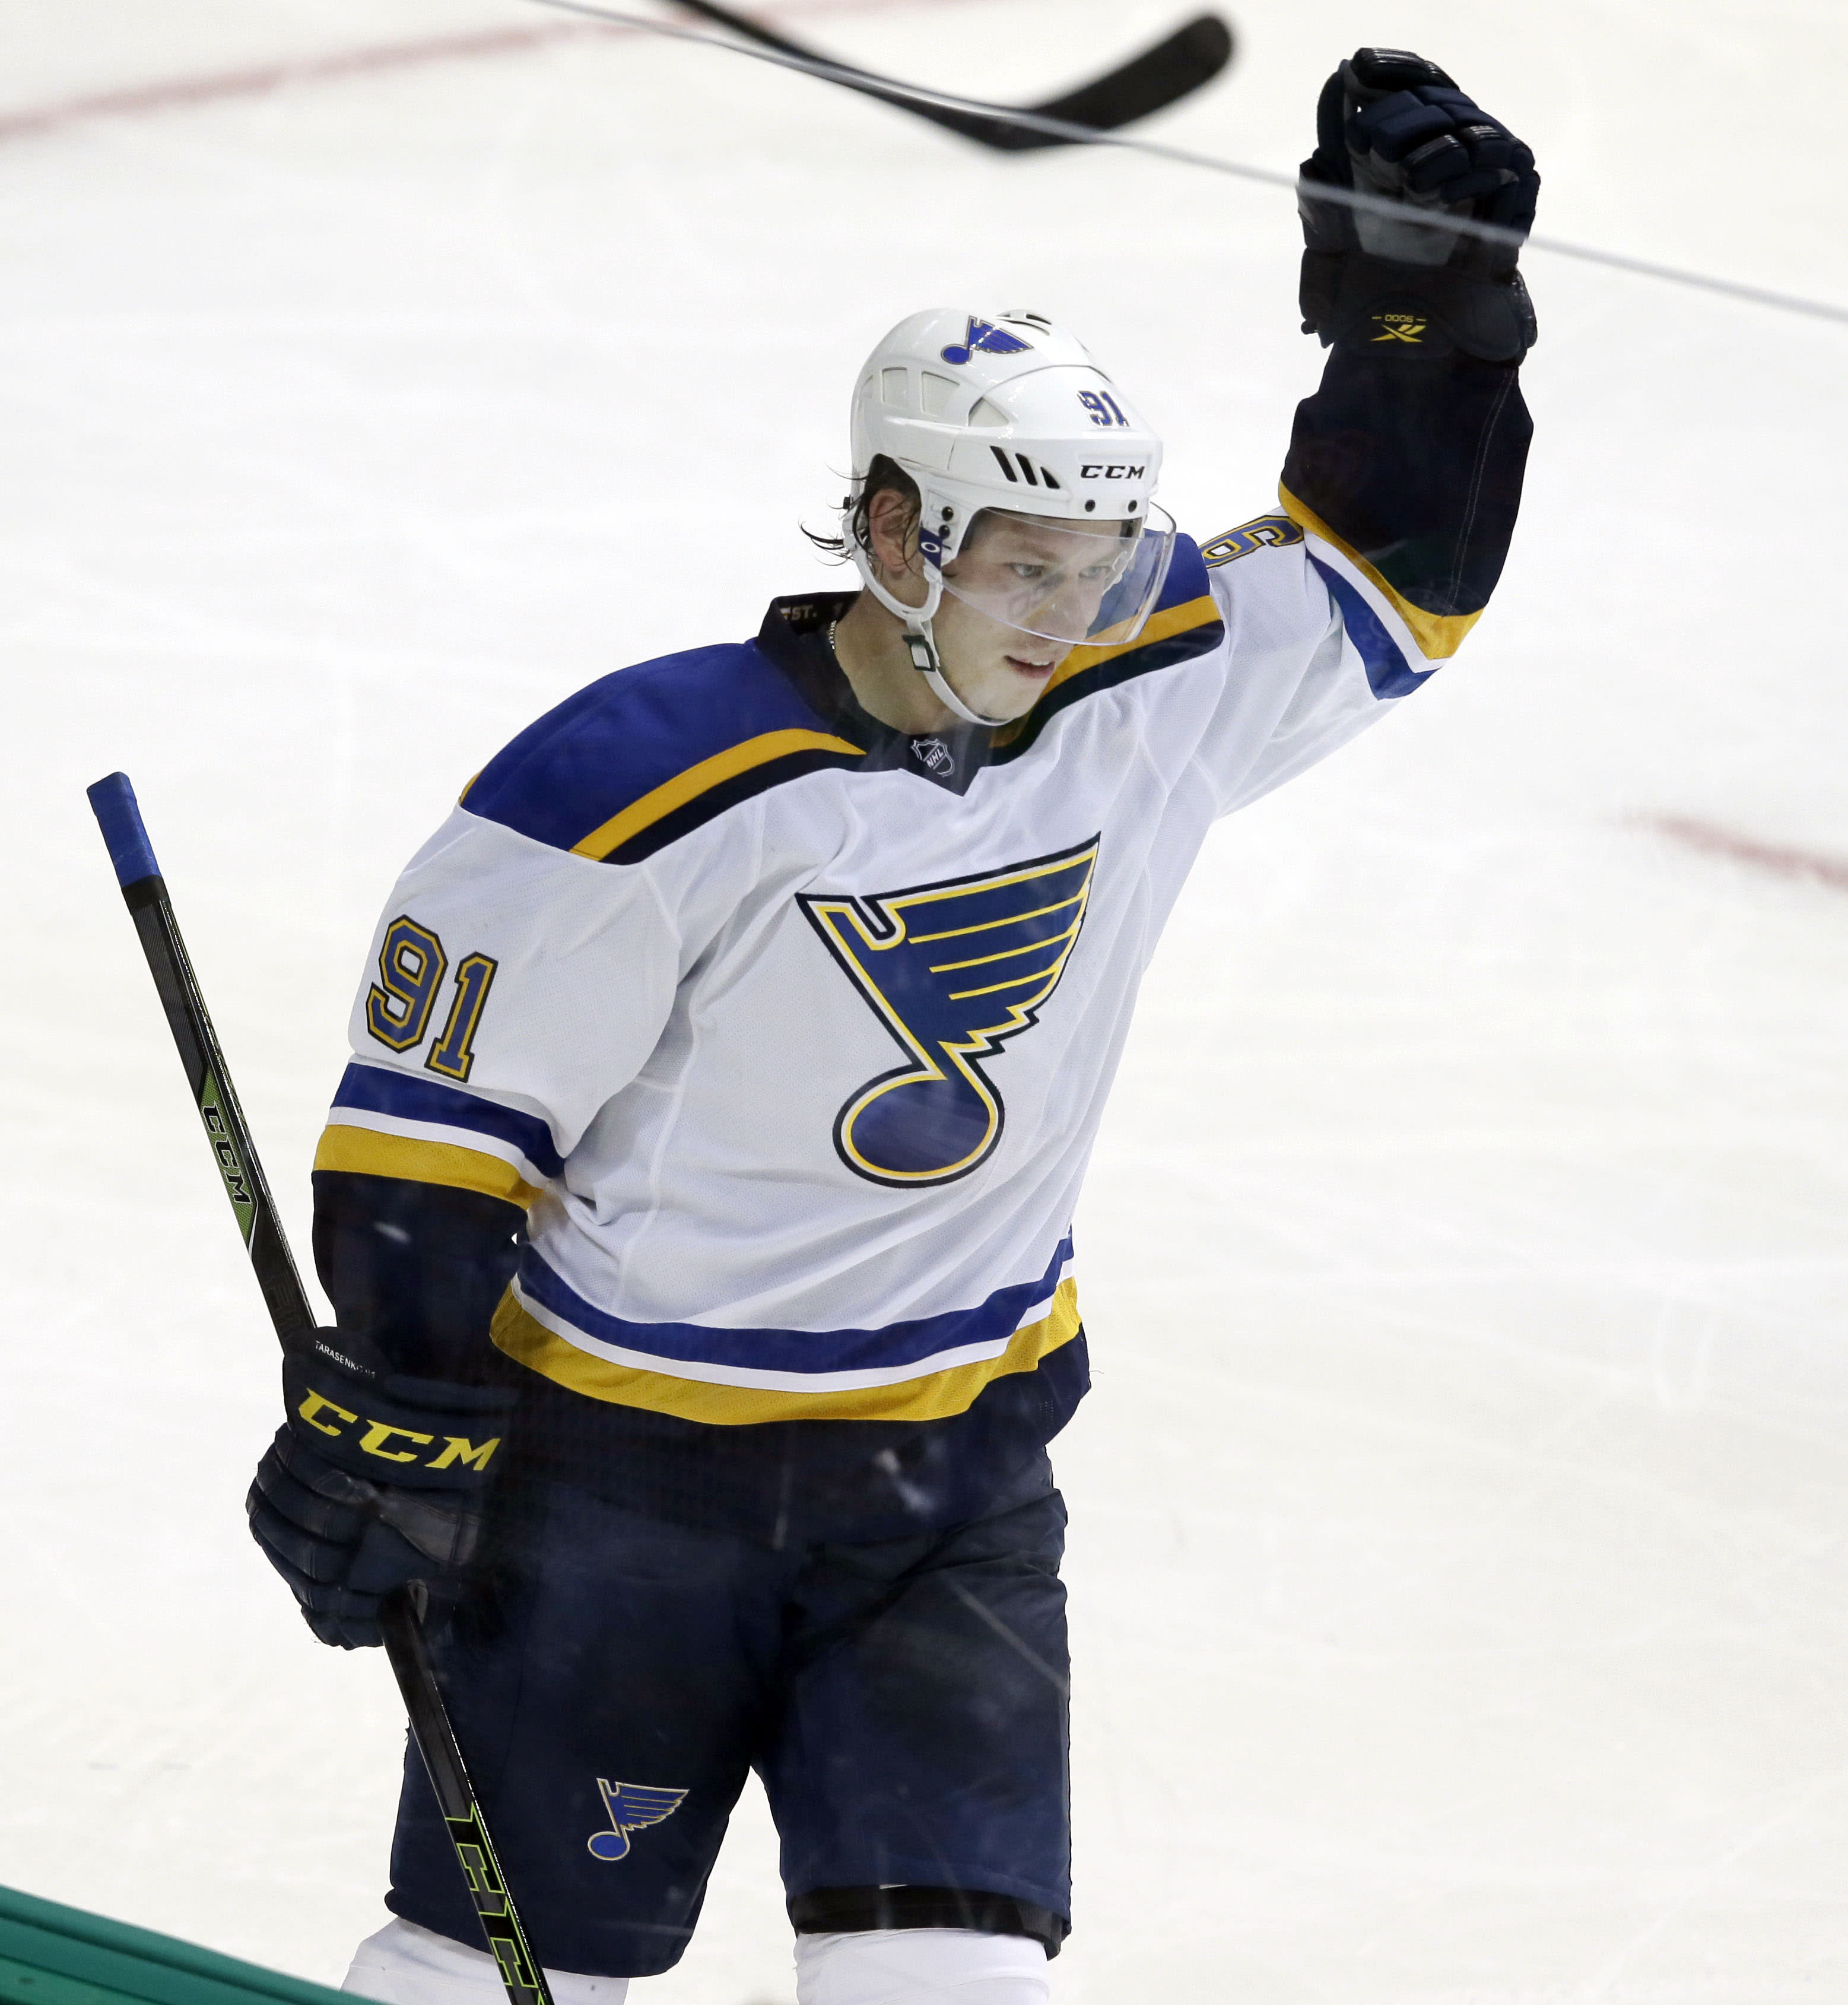 Hitchcock going to more aggressive attack for Blues